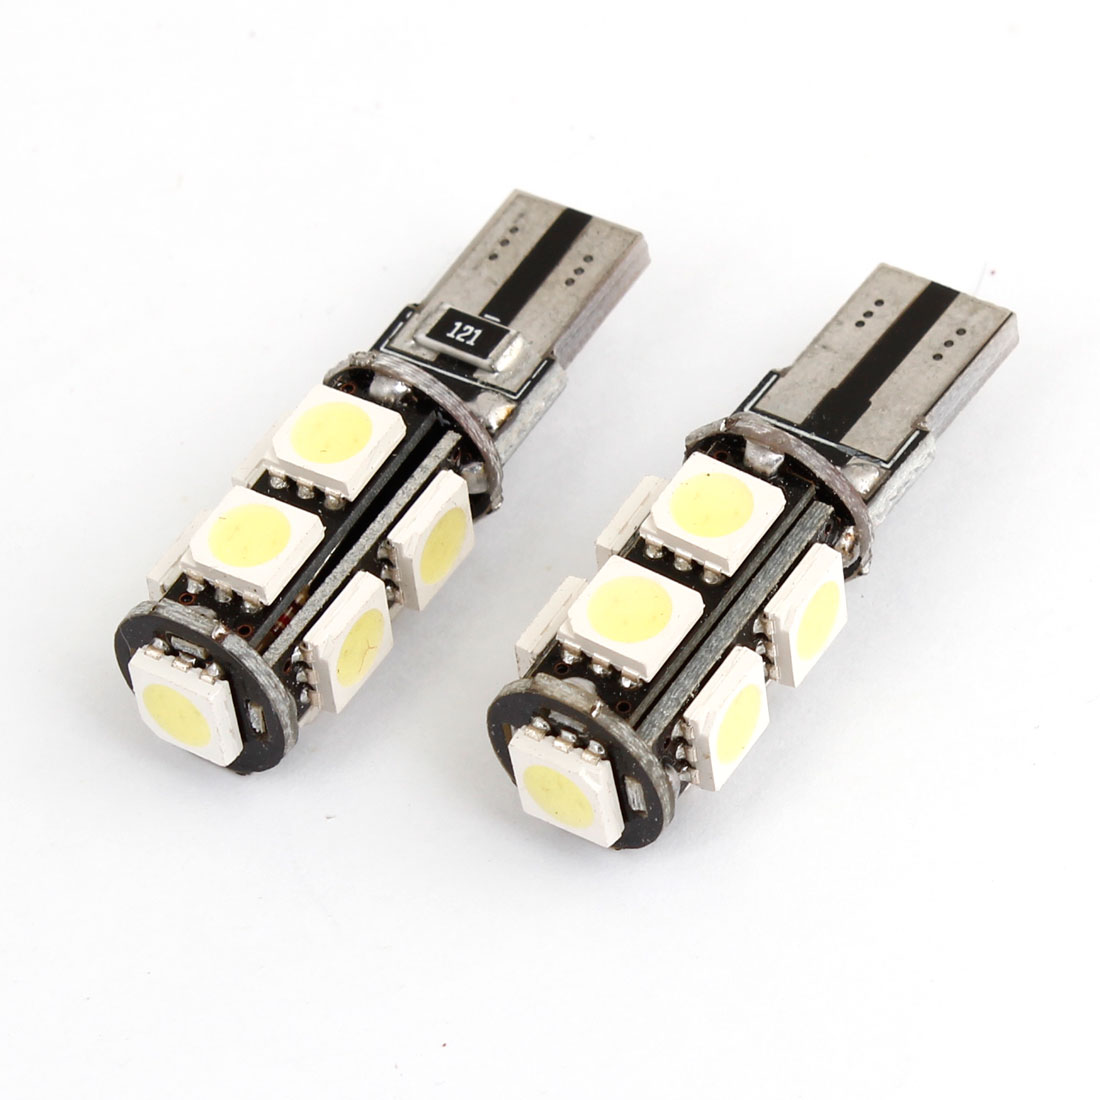 Error Free Canbus 2825 2821 W5W T10 9 5050 SMD LED White Car Light Bulb 2 Pcs